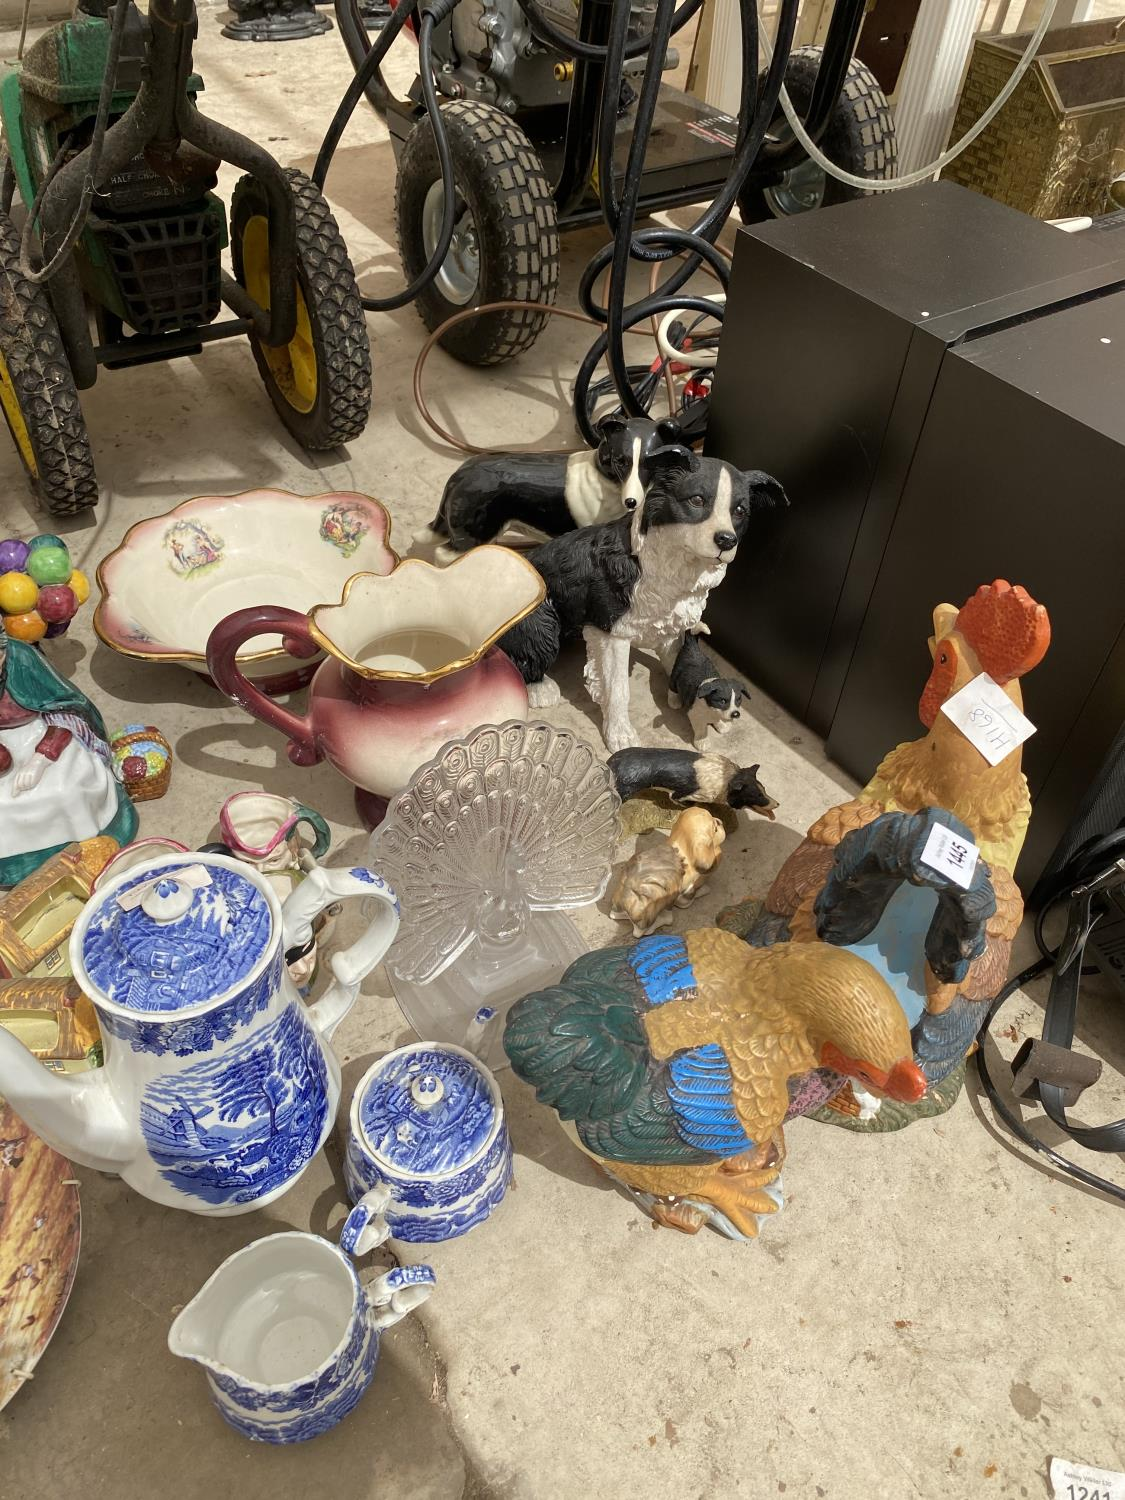 AN ASSORTMENT OF CERAMICS TO INCLUDE BLUE AND WHITE WARE, ANIMAL FIGURES AND JUGS ETC - Image 4 of 5